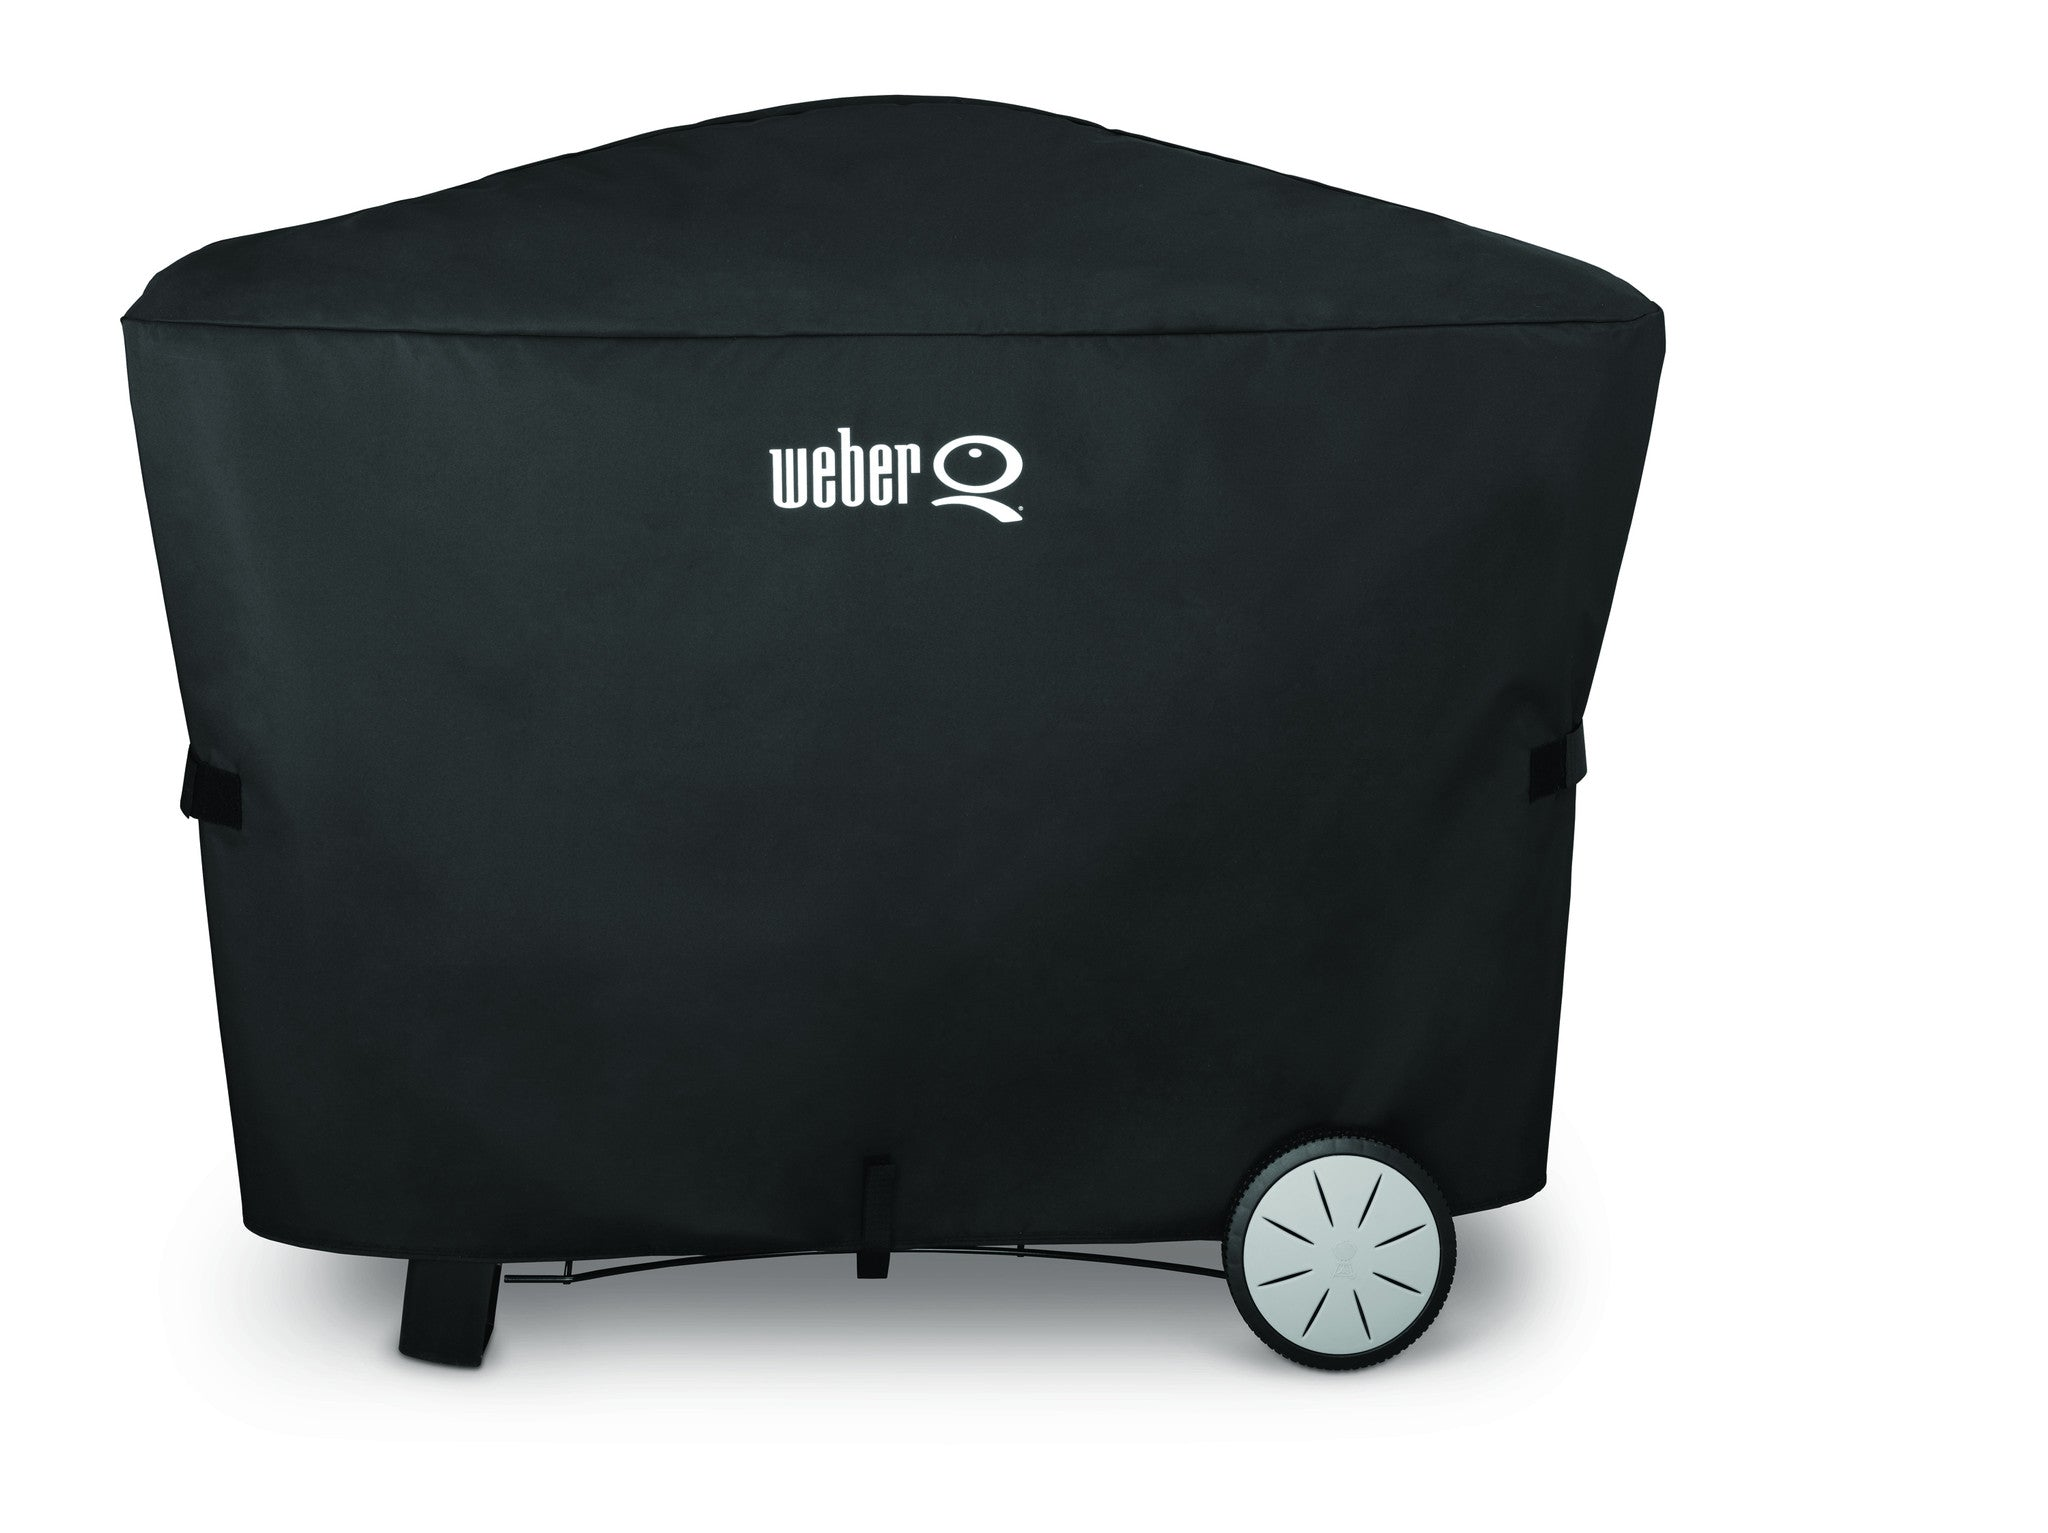 weber q series gas grill covers. Black Bedroom Furniture Sets. Home Design Ideas